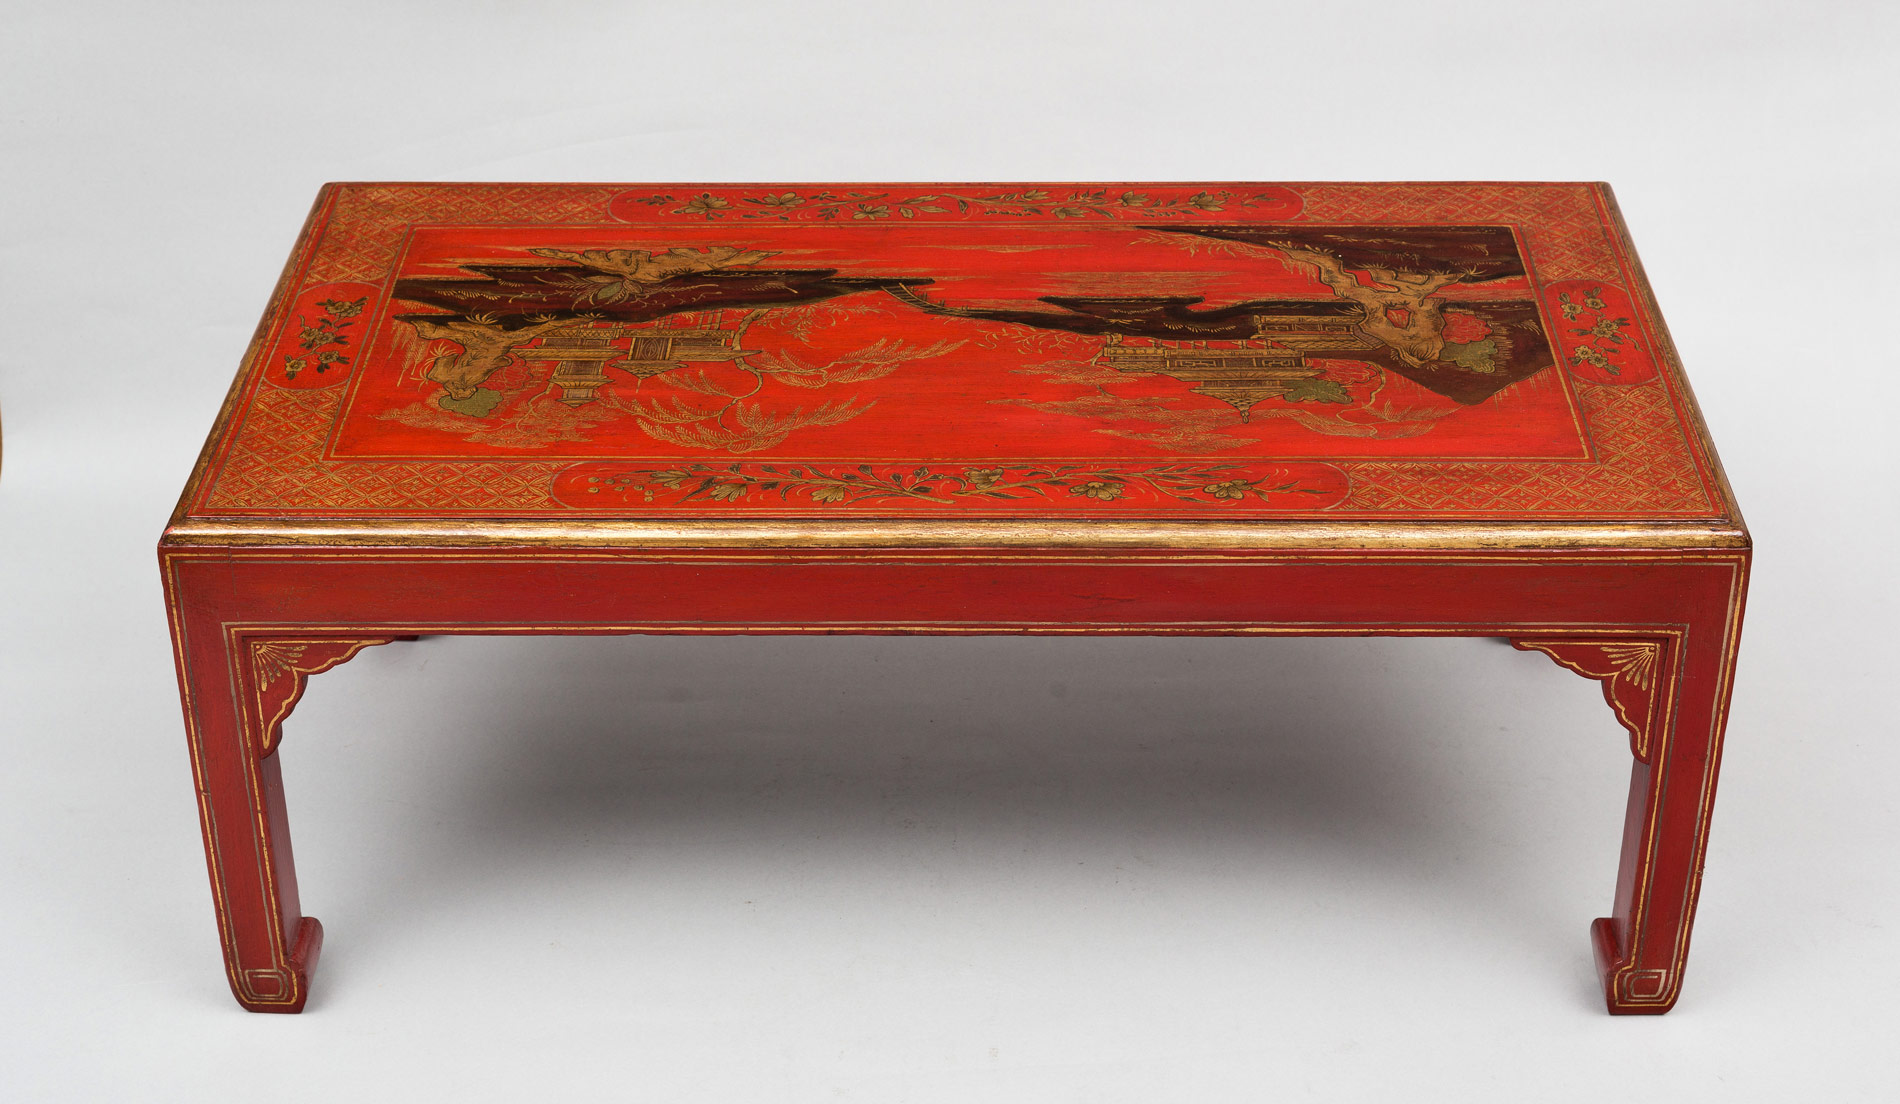 187 Product 187 Chinoiserie Red Lacquered Coffee Table